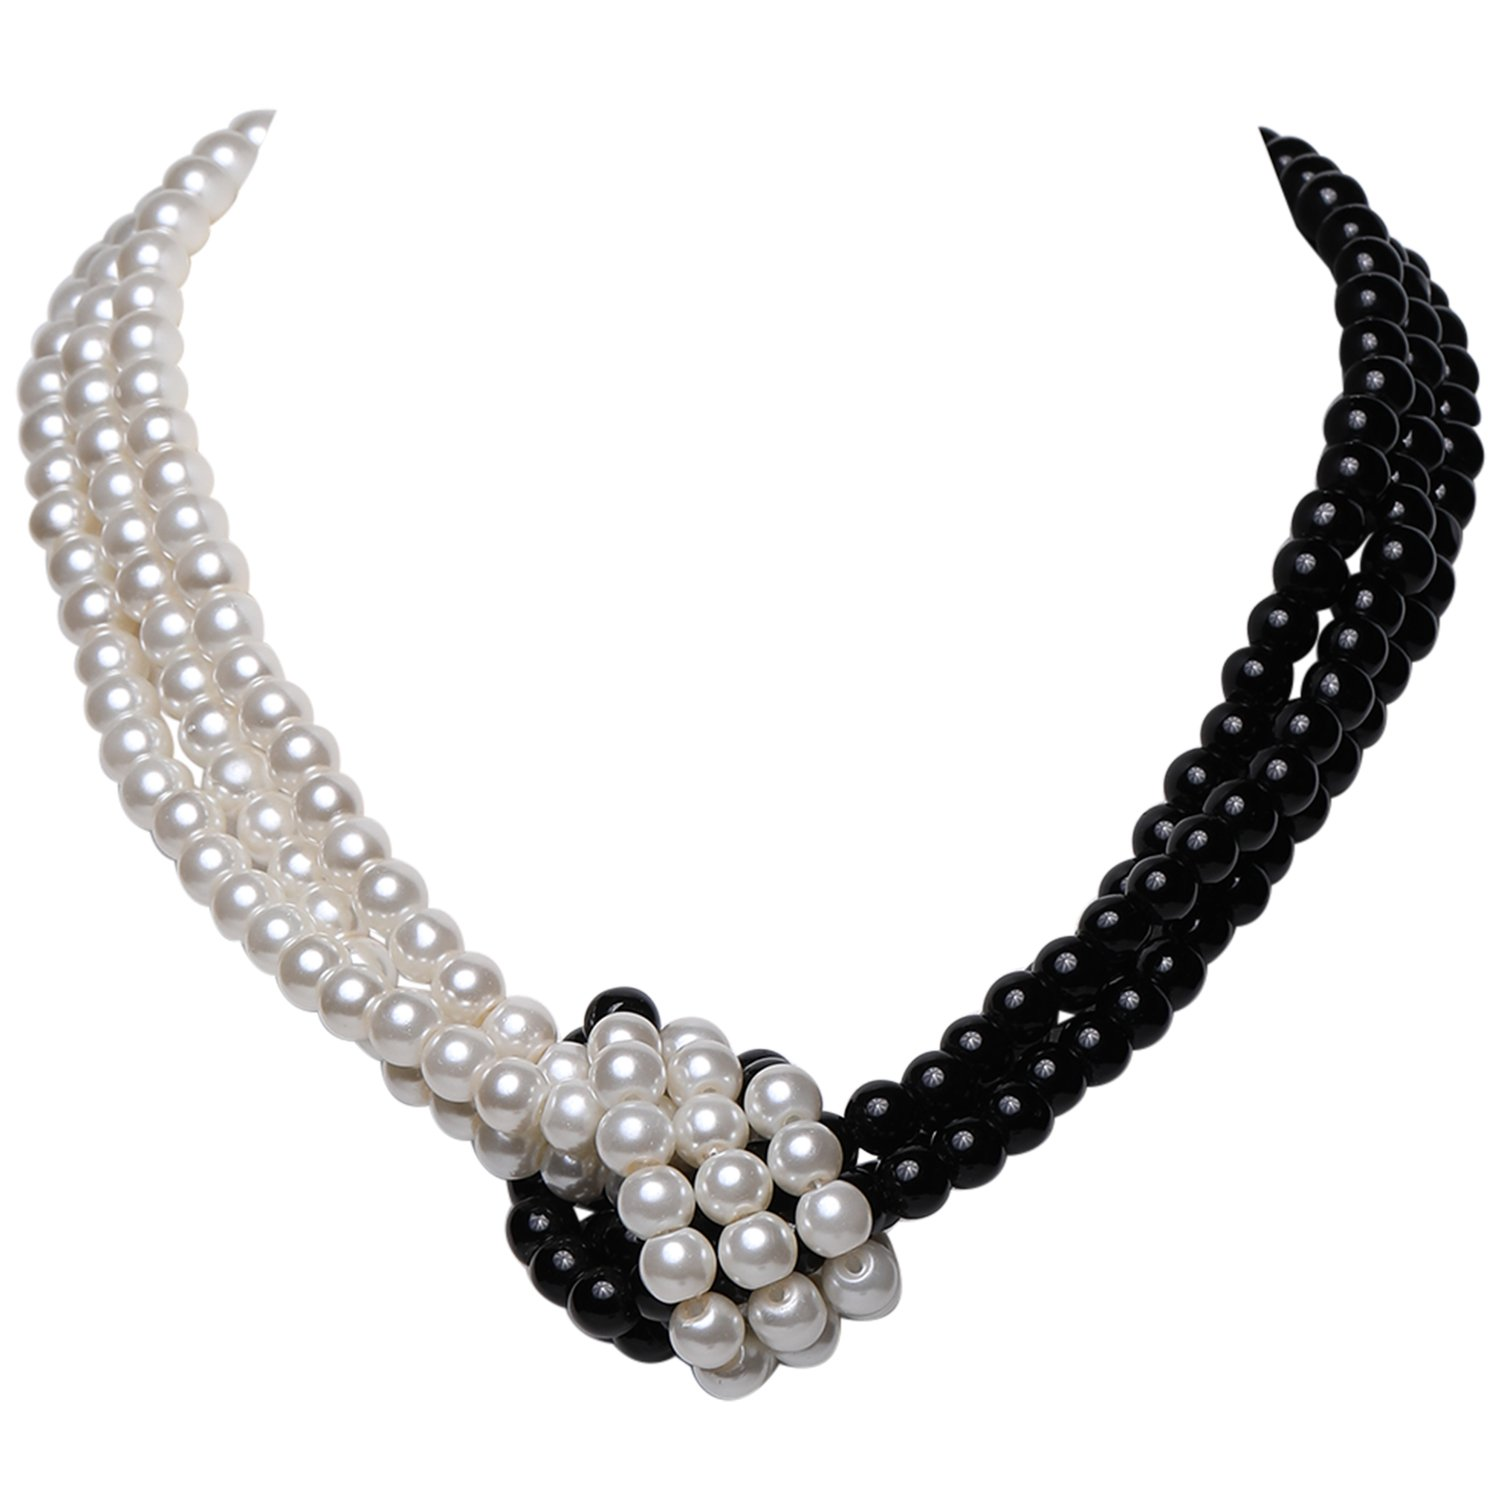 BABEYOND 1920s Imitation Pearls Necklace Gatsby Knot Pearl Necklace 20s Pearls 1920s Flapper Accessories Two-tone Stitching Style (Black and White)